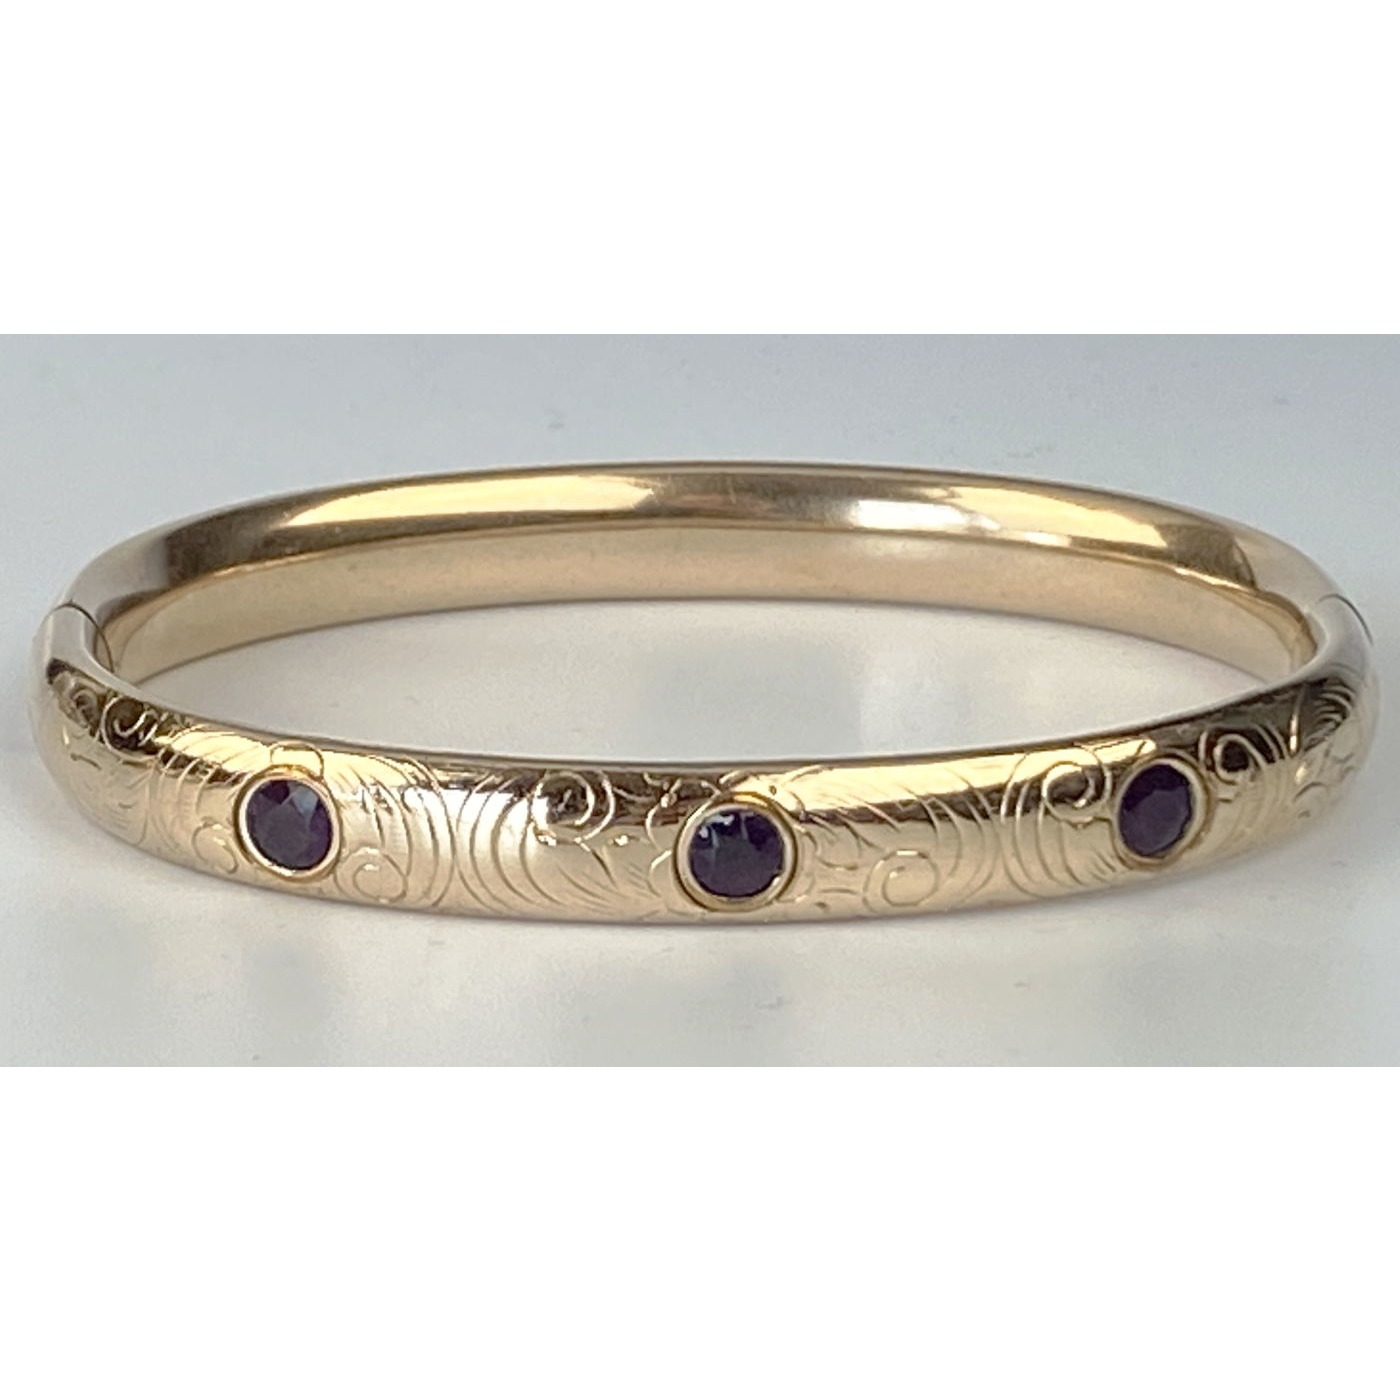 Beautifully Engraved Engagement Bangle with Three Deep Purple Stones